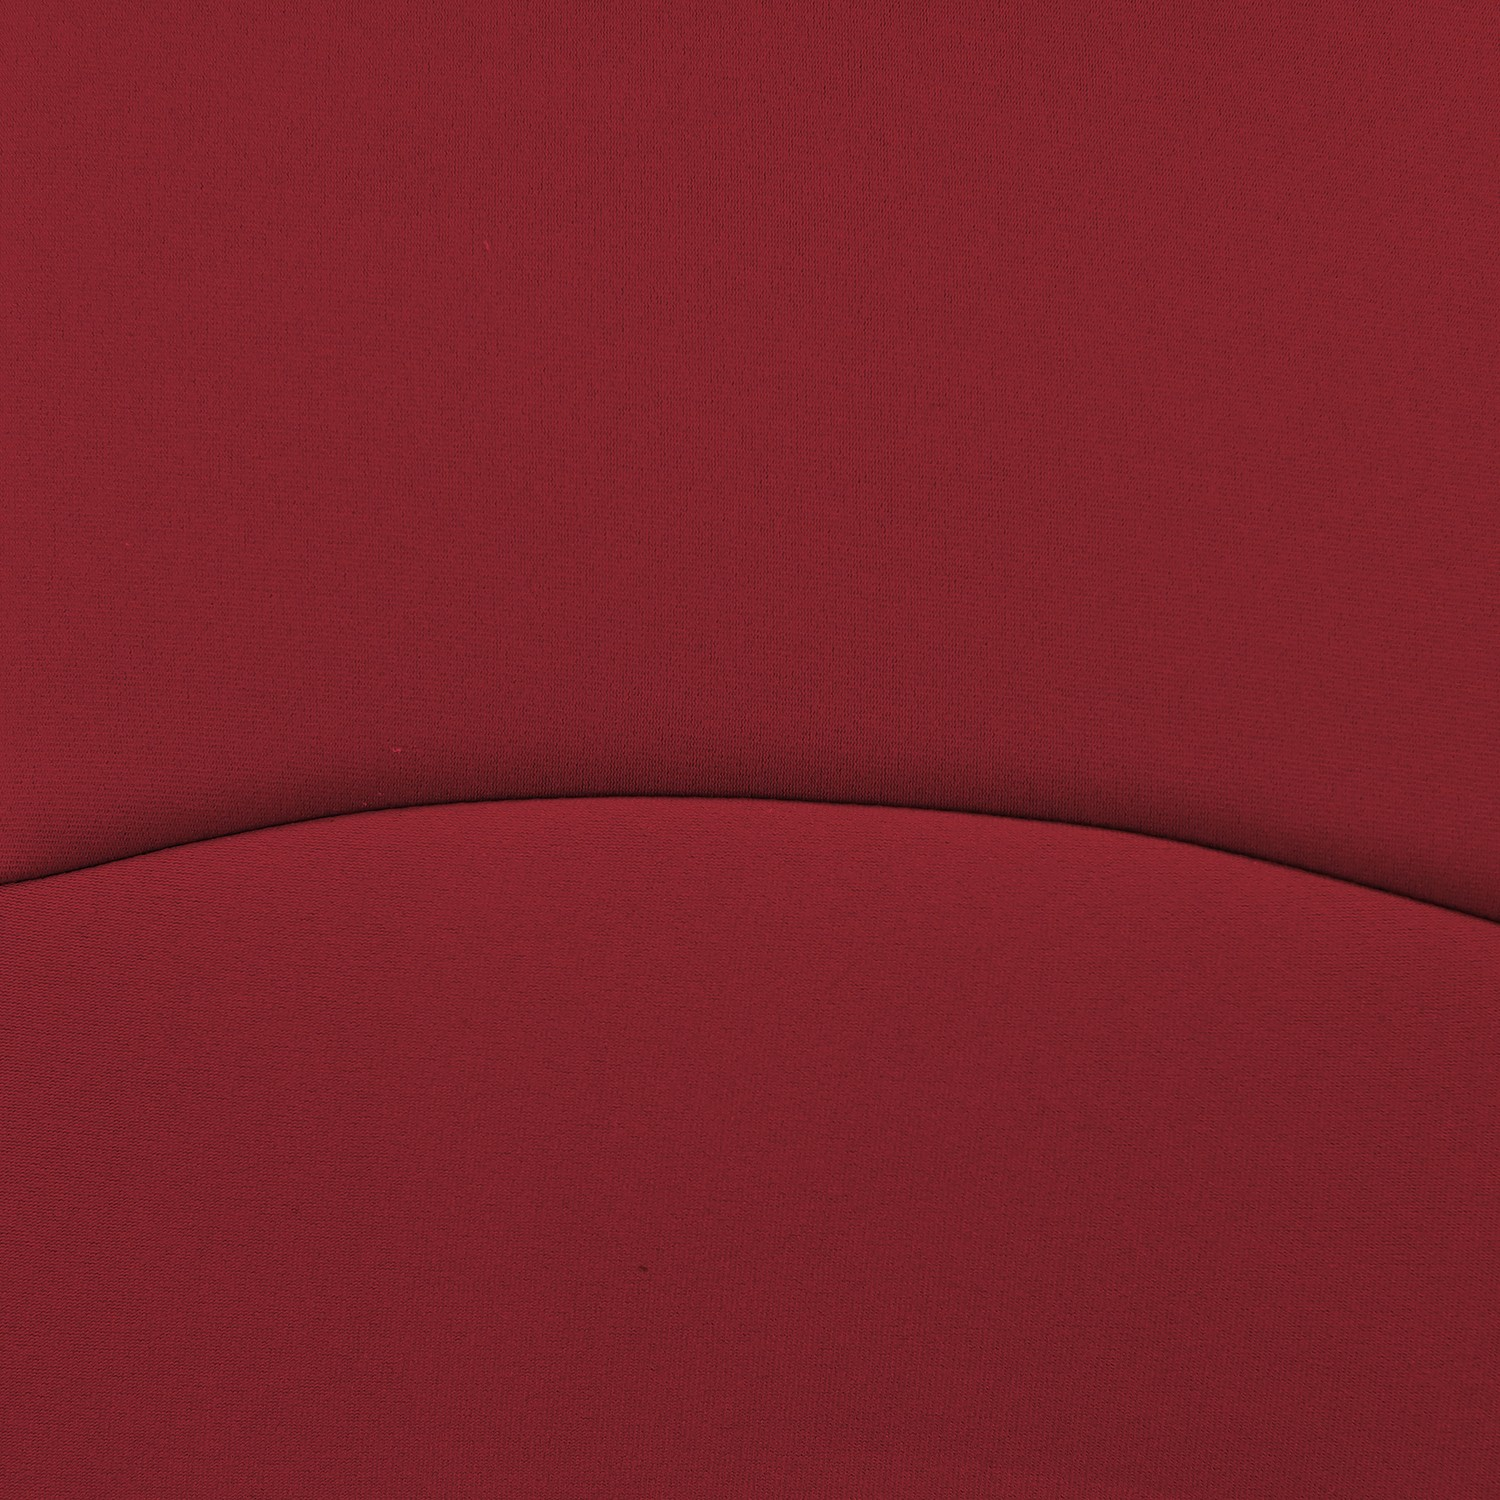 Coverking Neoprene seat cover swatch